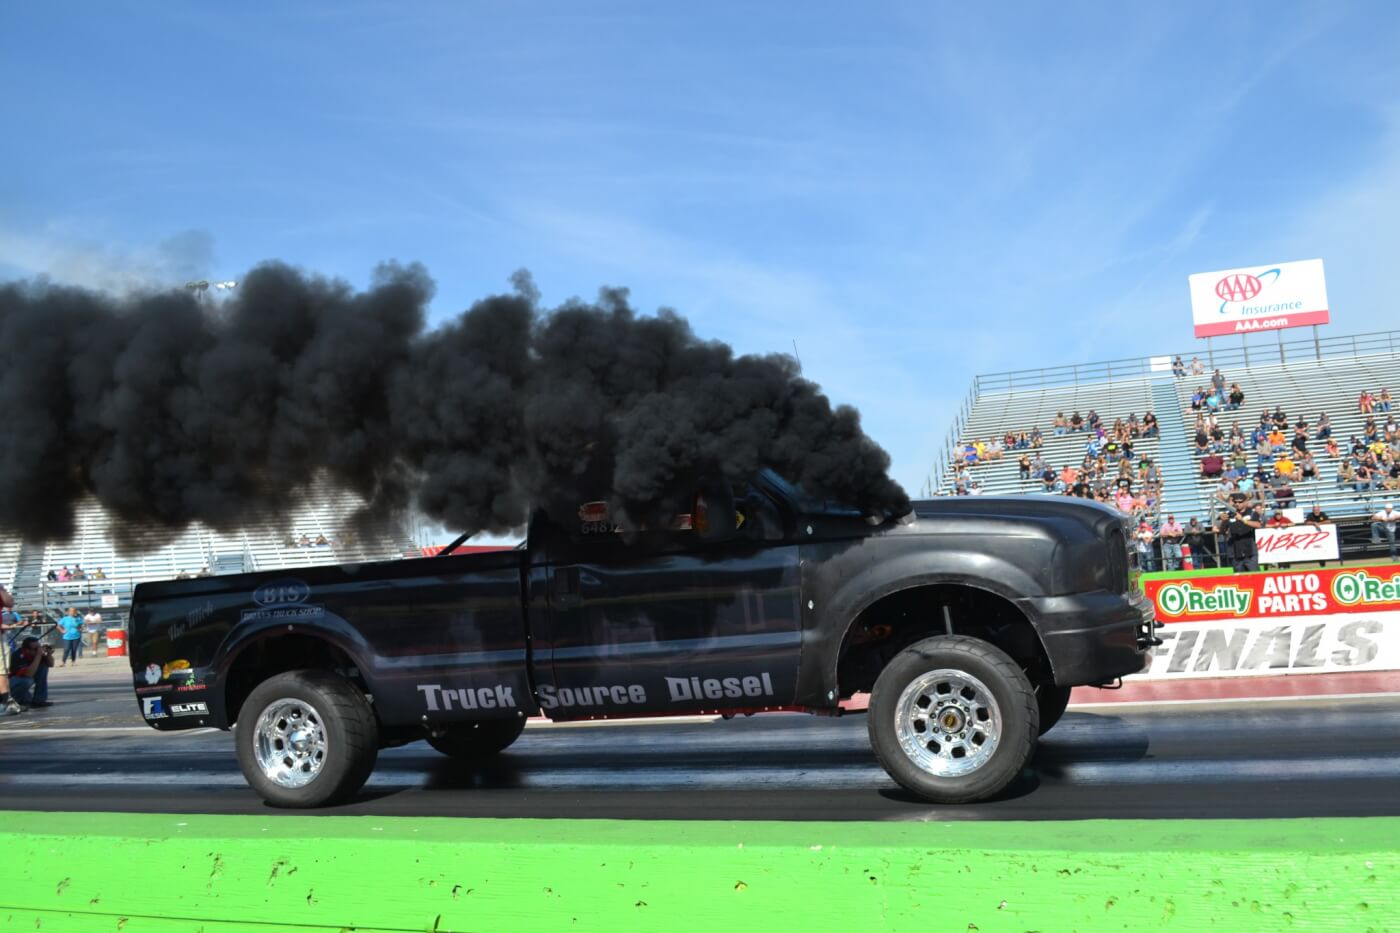 A step up from 10.90, the NHRDA's Super Street class is a heads-up category with a 6,000-pound minimum weight. It attracted some of the fastest four-wheel drives in the country, like Truck Source Diesel's awesome 9-second triple turbo Cummins-powered Ford.